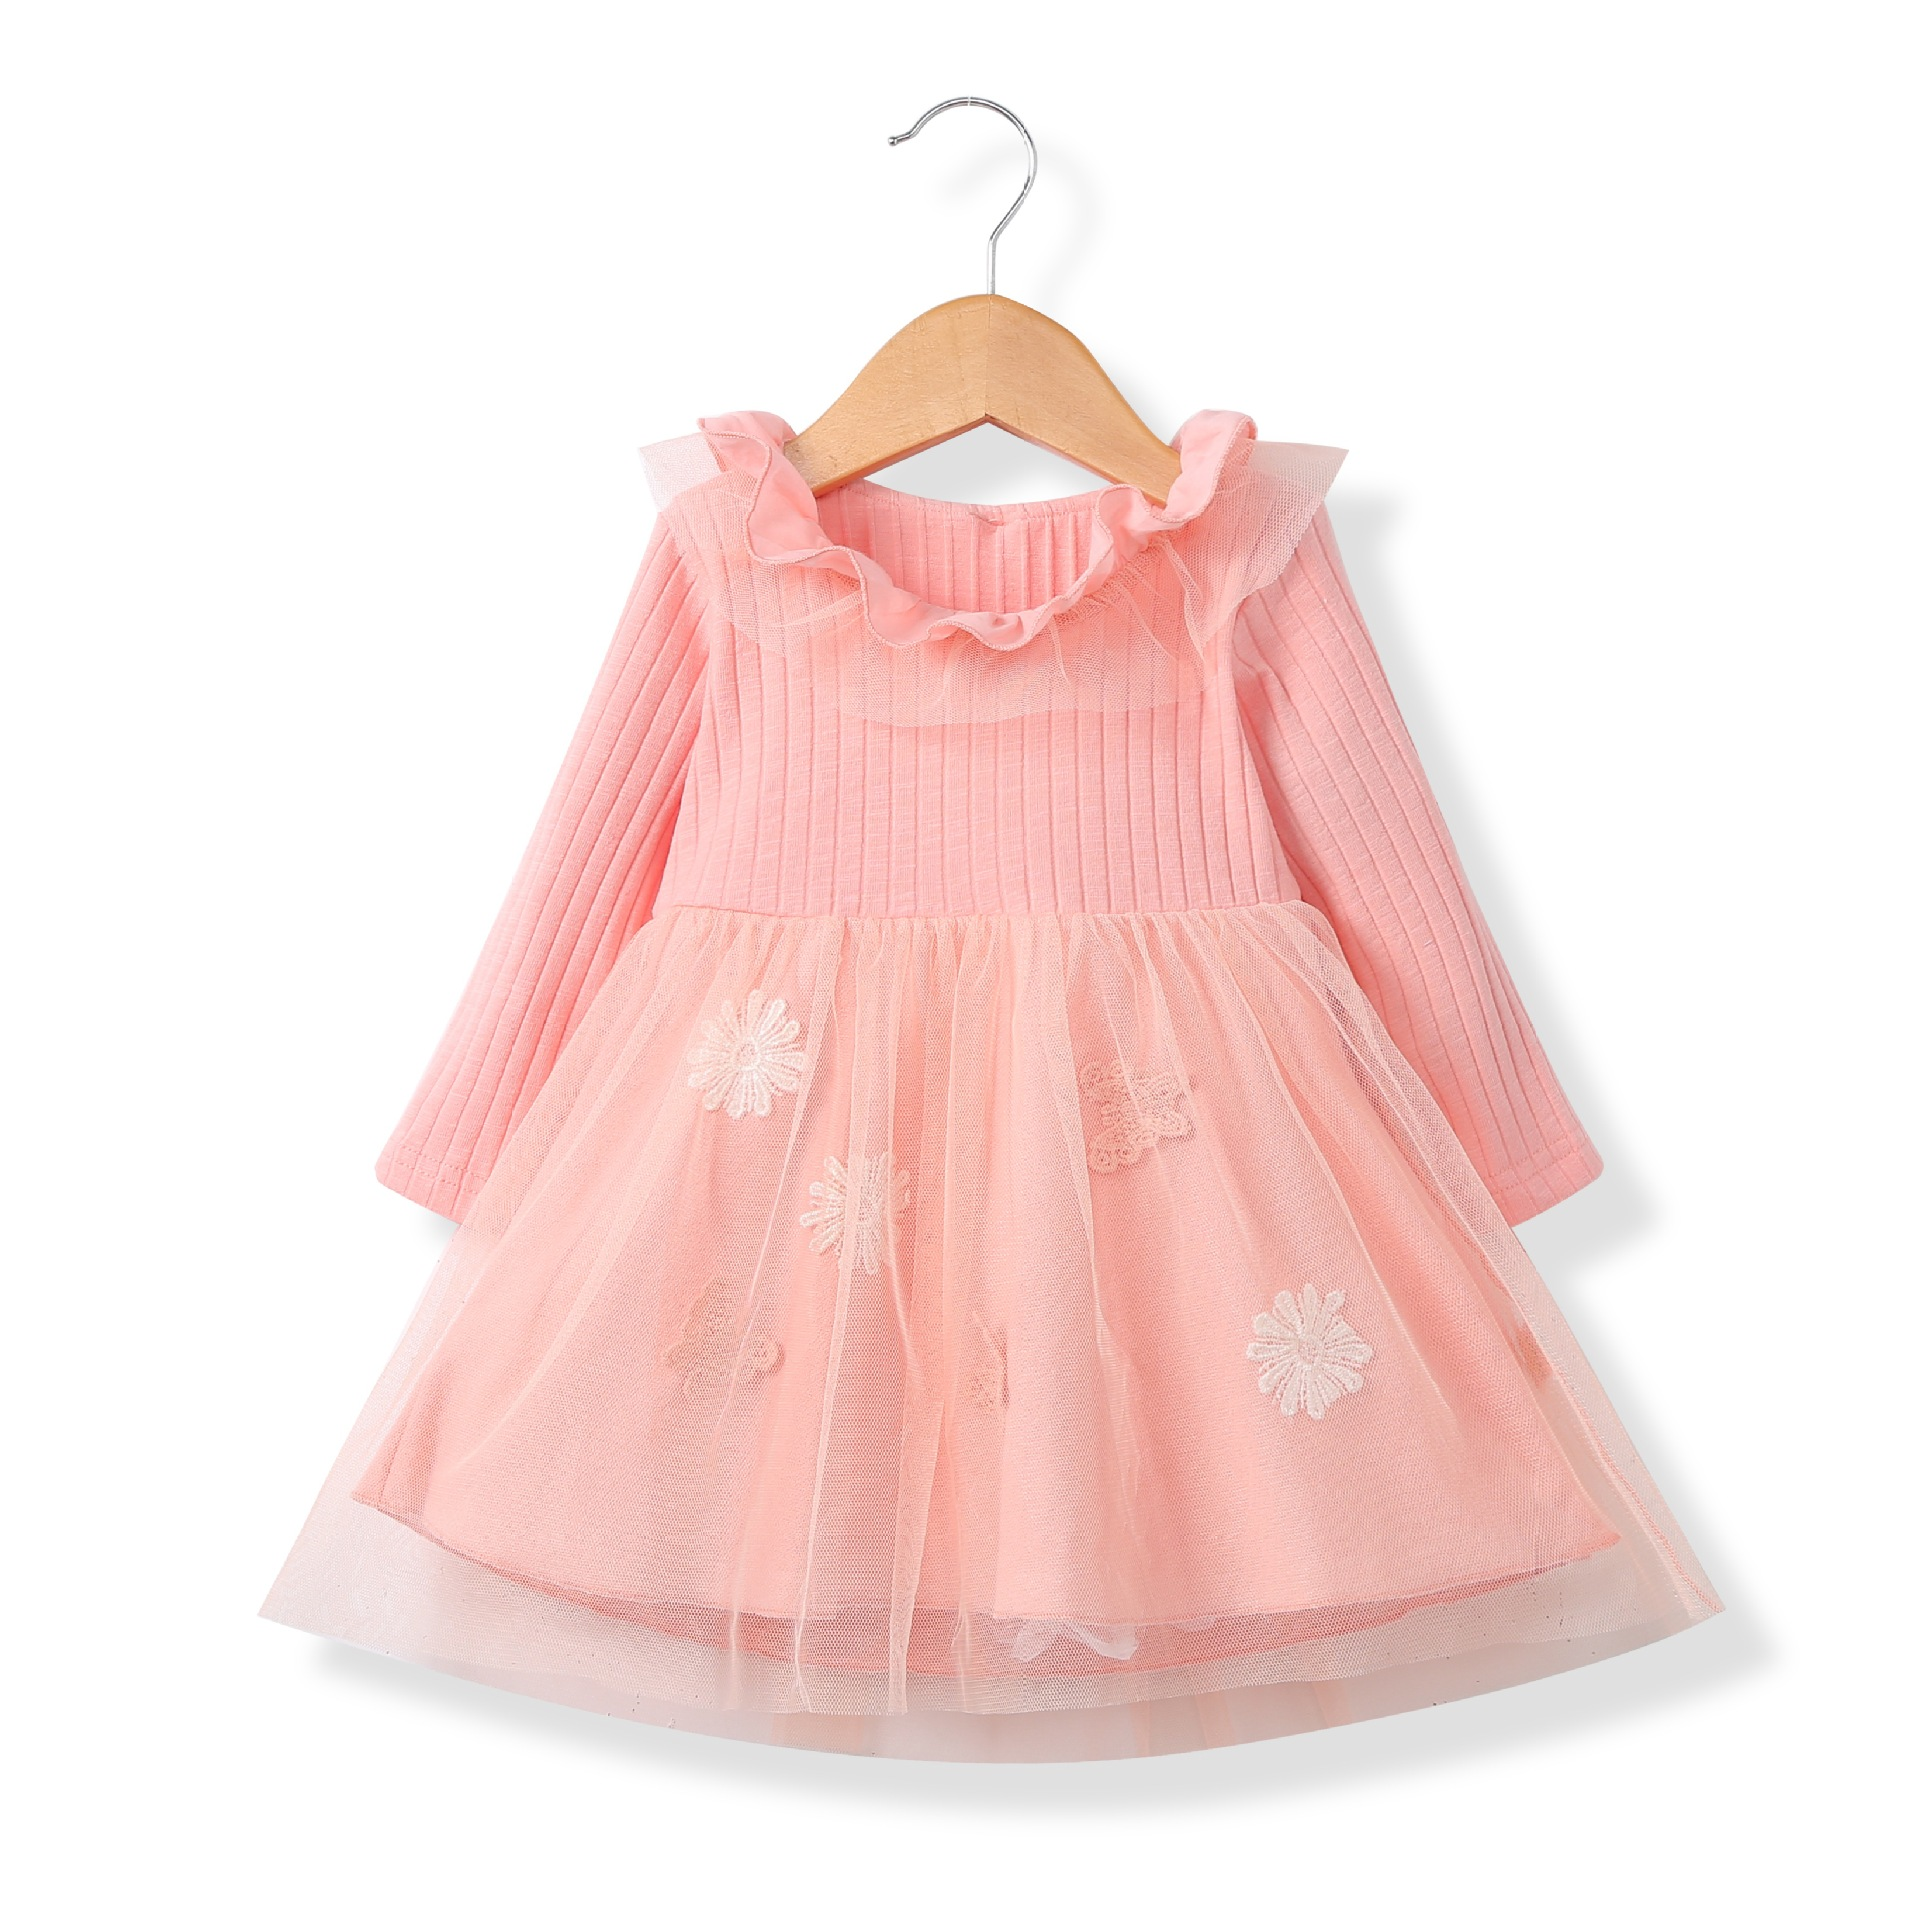 Ruffle Trim Flower Applique Tulle Dress